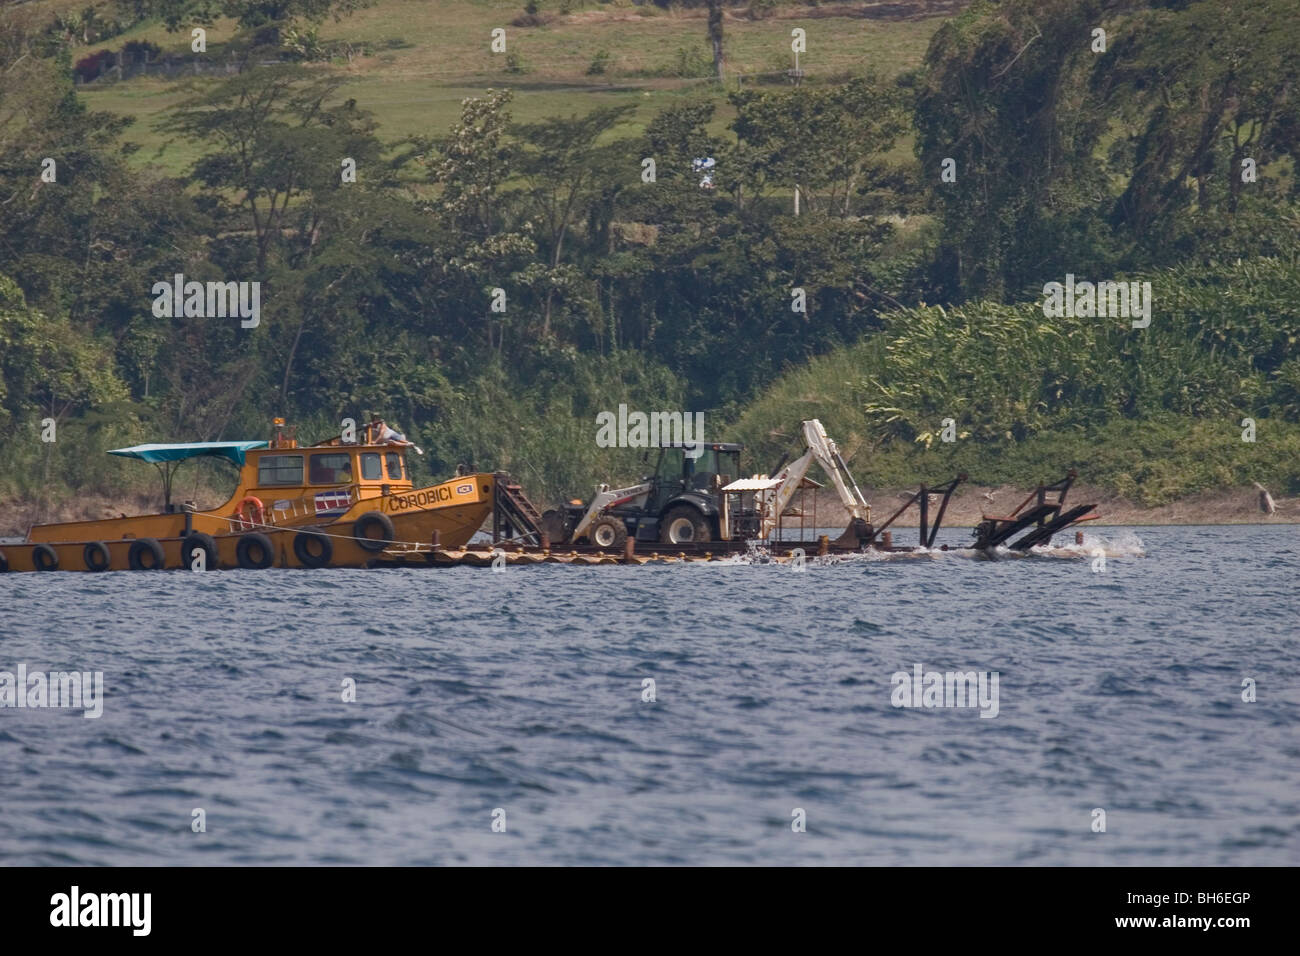 Digger on Lake Arenal, Costa Rica - Stock Image